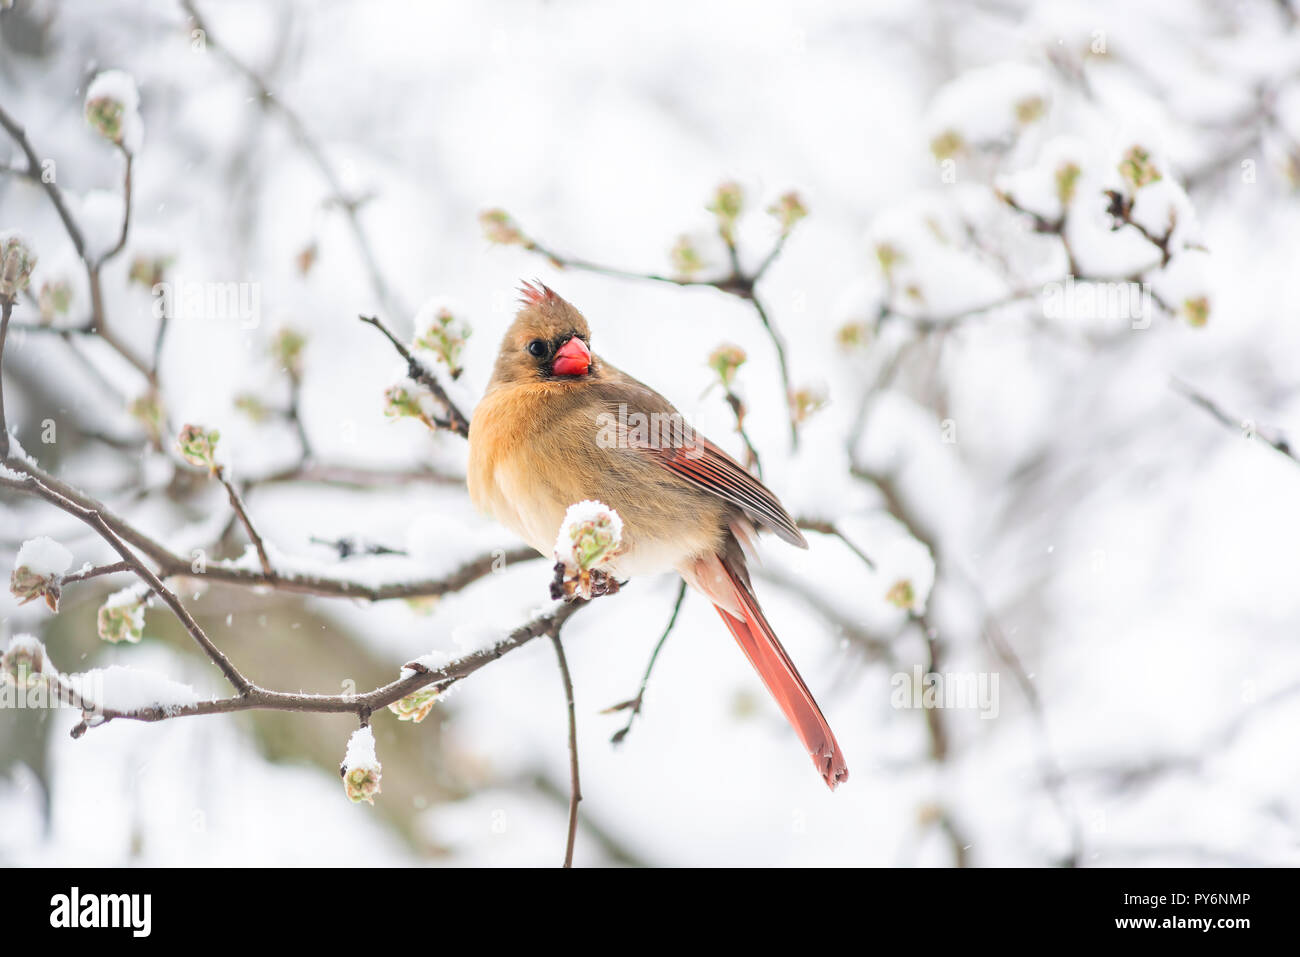 Puffed up angry one female red northern cardinal, Cardinalis, bird sitting perched on tree branch during heavy winter in Virginia, snow flakes falling - Stock Image